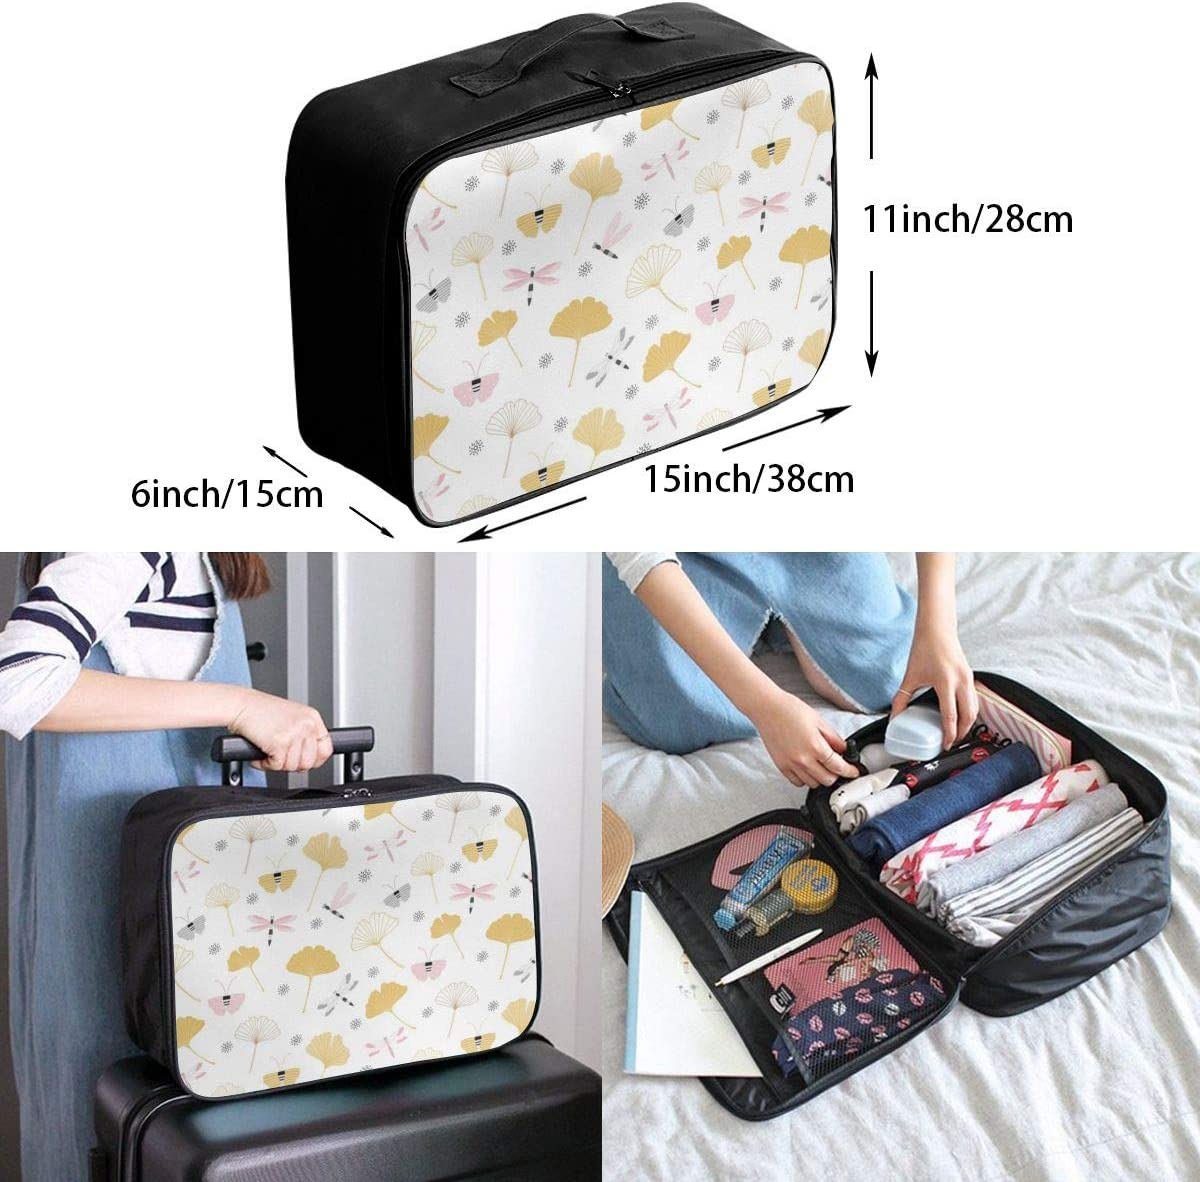 Ginkgo Leaves Insect Lightweight LargeTravel Storage Luggage Trolley Bag Travel Duffel Bags Carry-On Tote